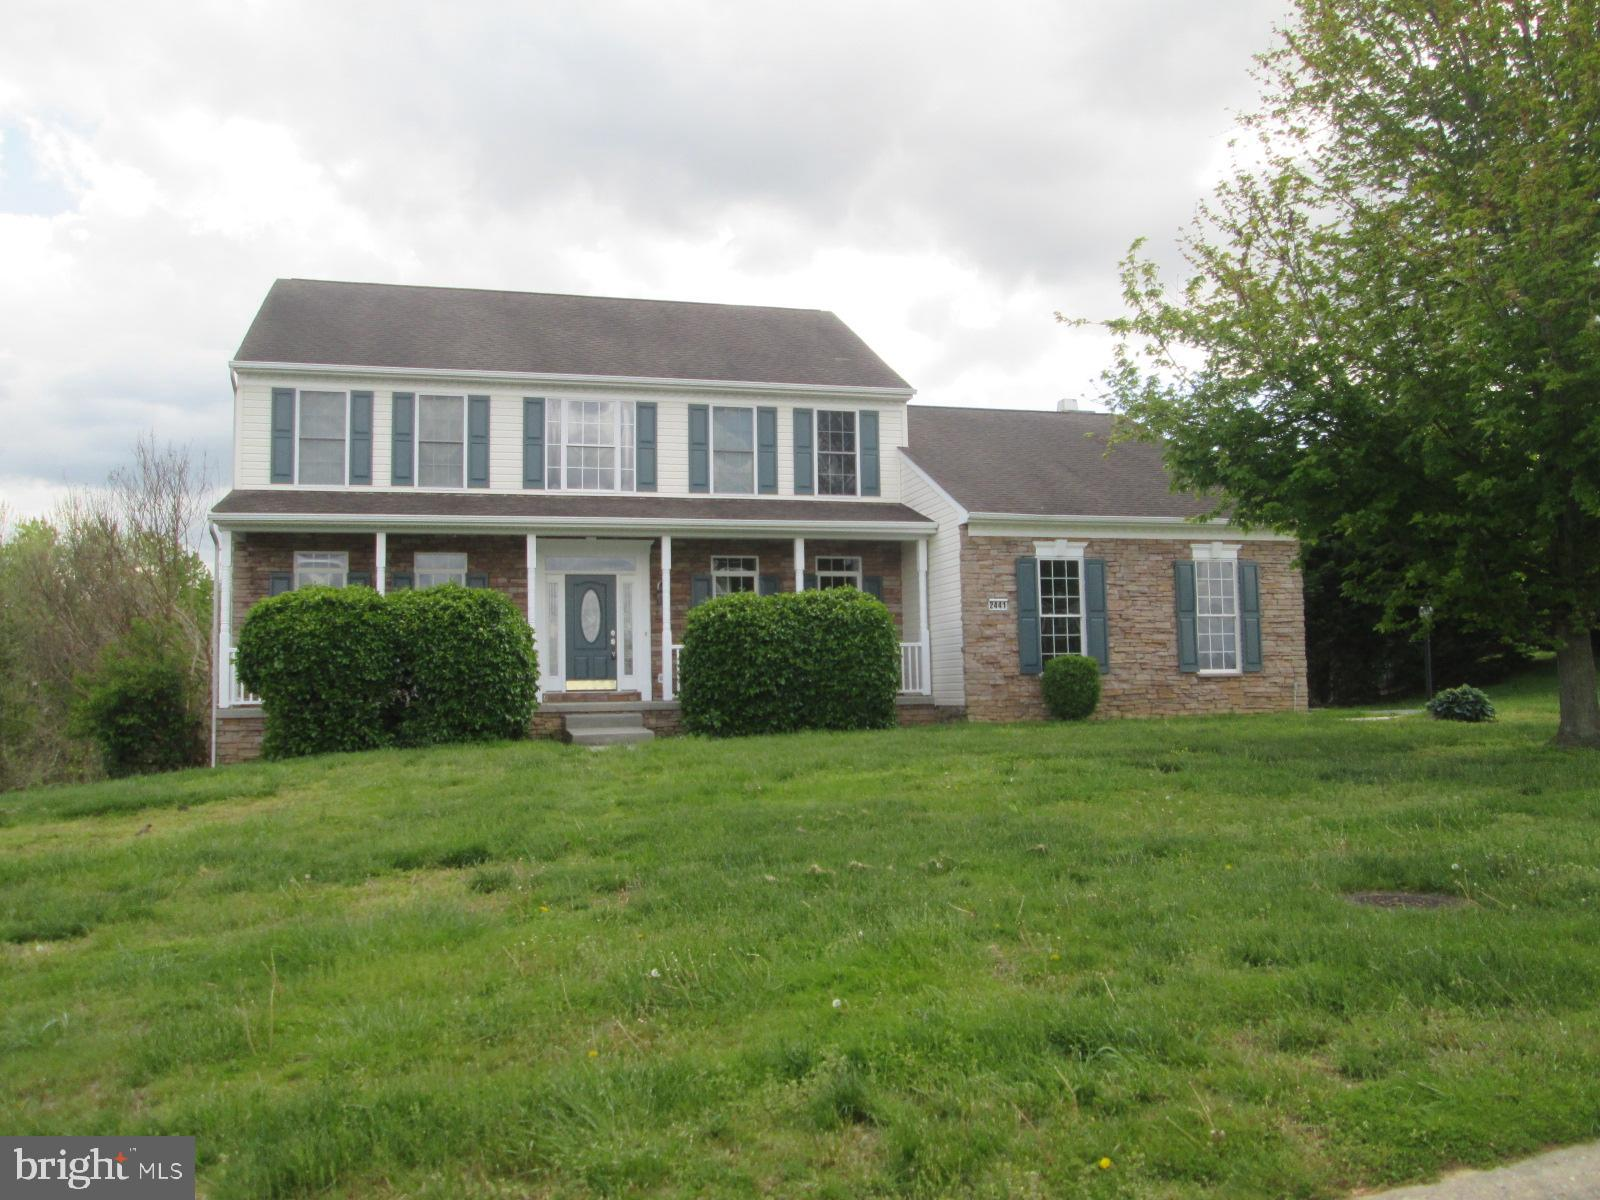 2441 Maxa Meadows Lane, Forest Hill, MD 21050